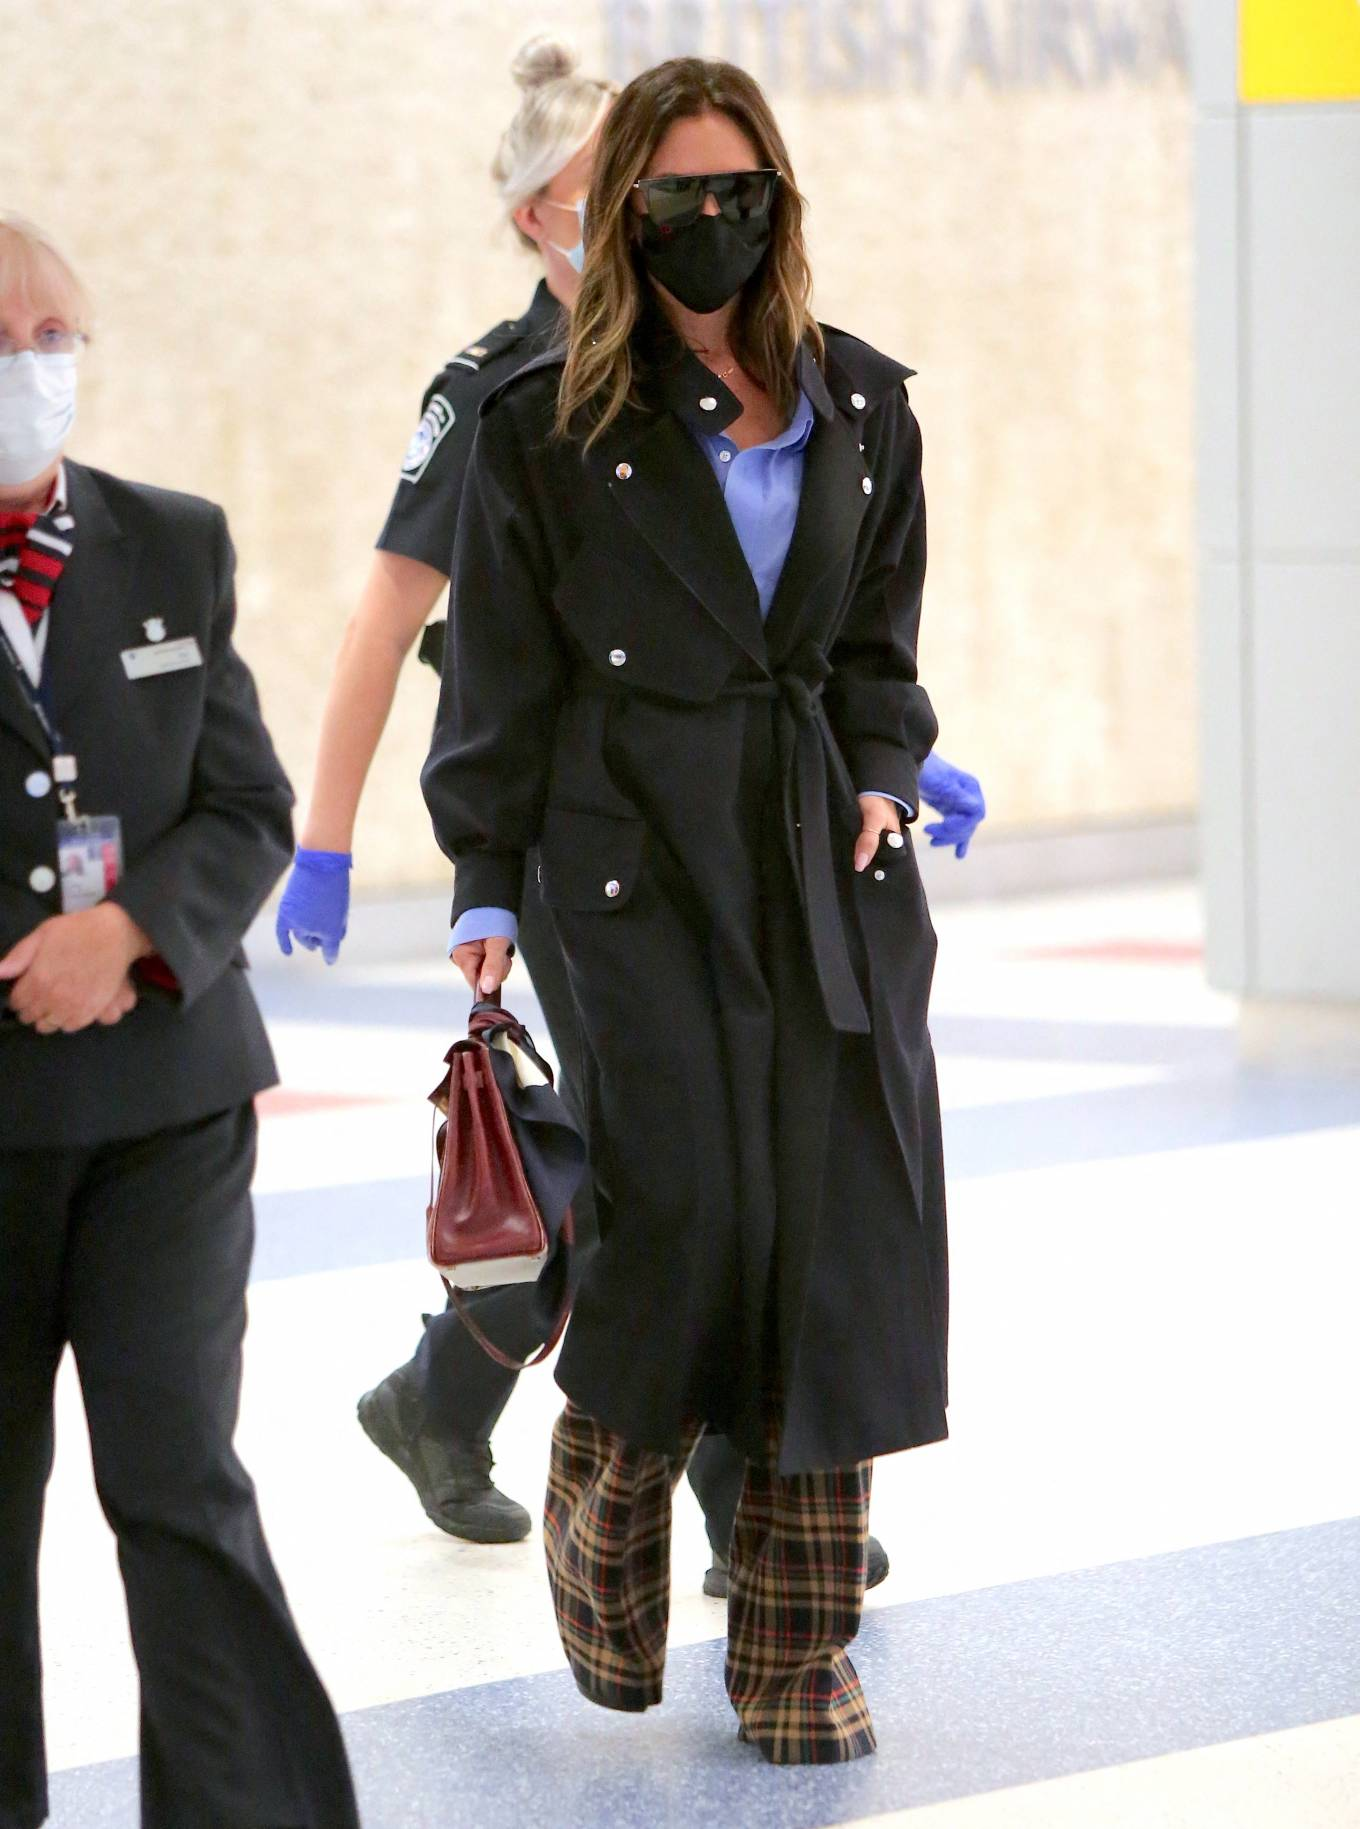 Victoria Beckham - Seen while rriving at JFK Airport in New York